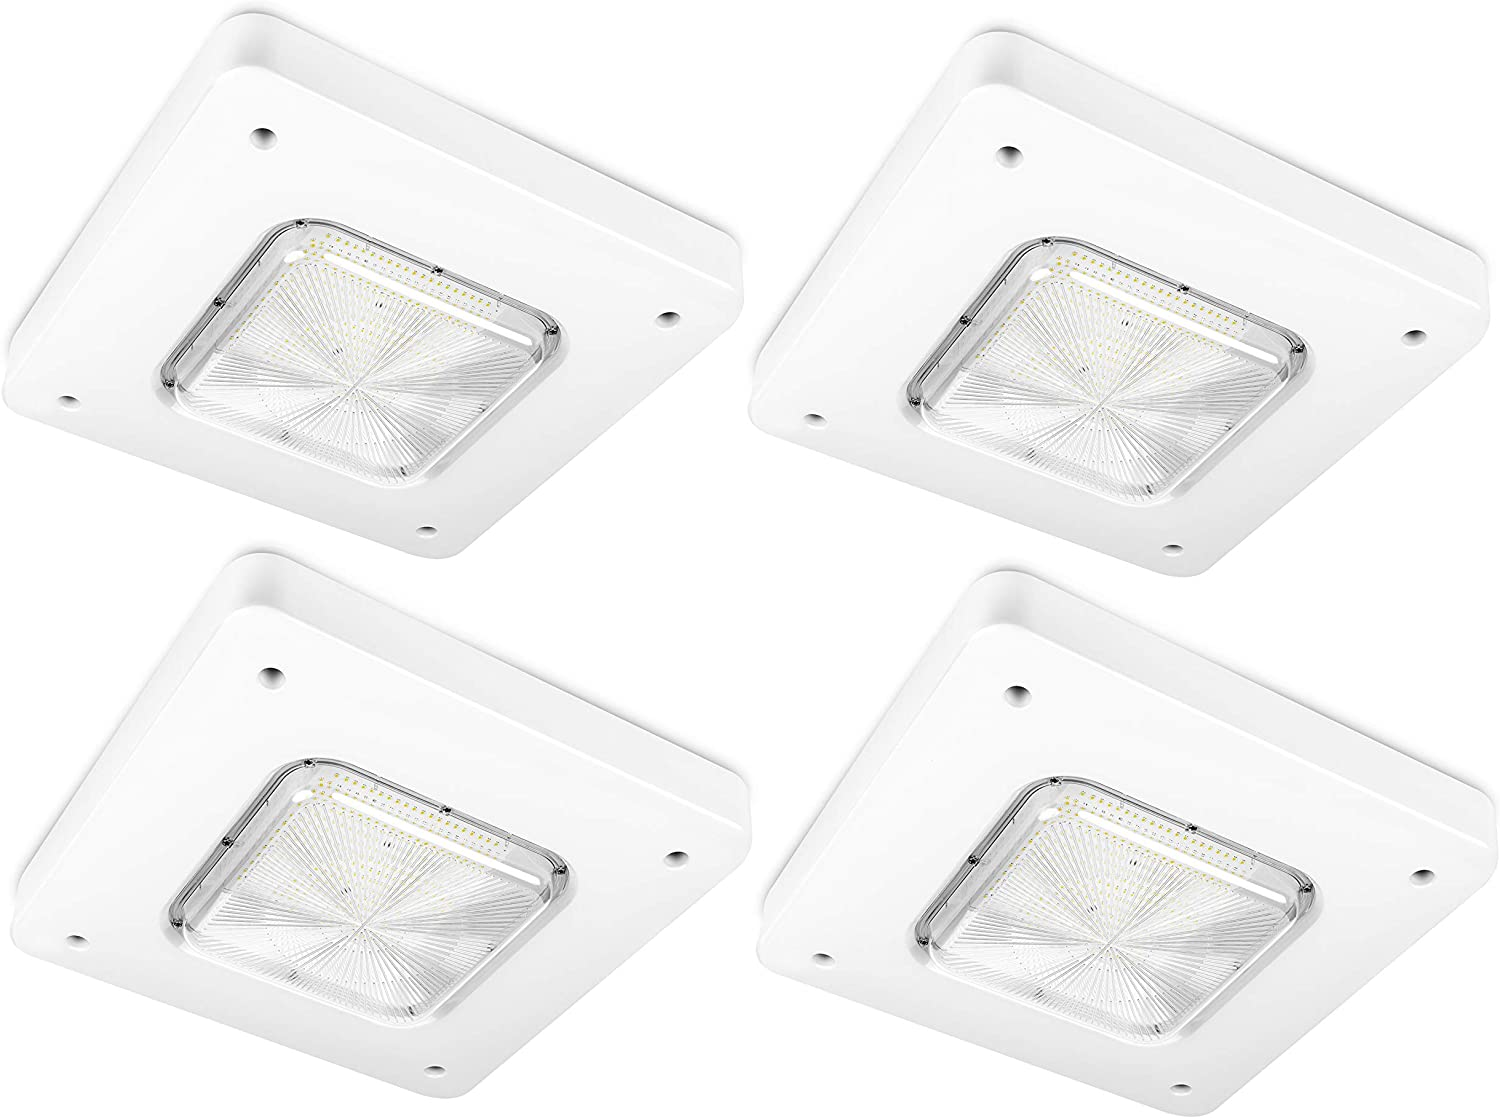 Hyperikon LED Canopy Light, Outdoor Gas Station Light Fixture, White, 5000K, UL, DLC, 100 Watts, 4 Pack